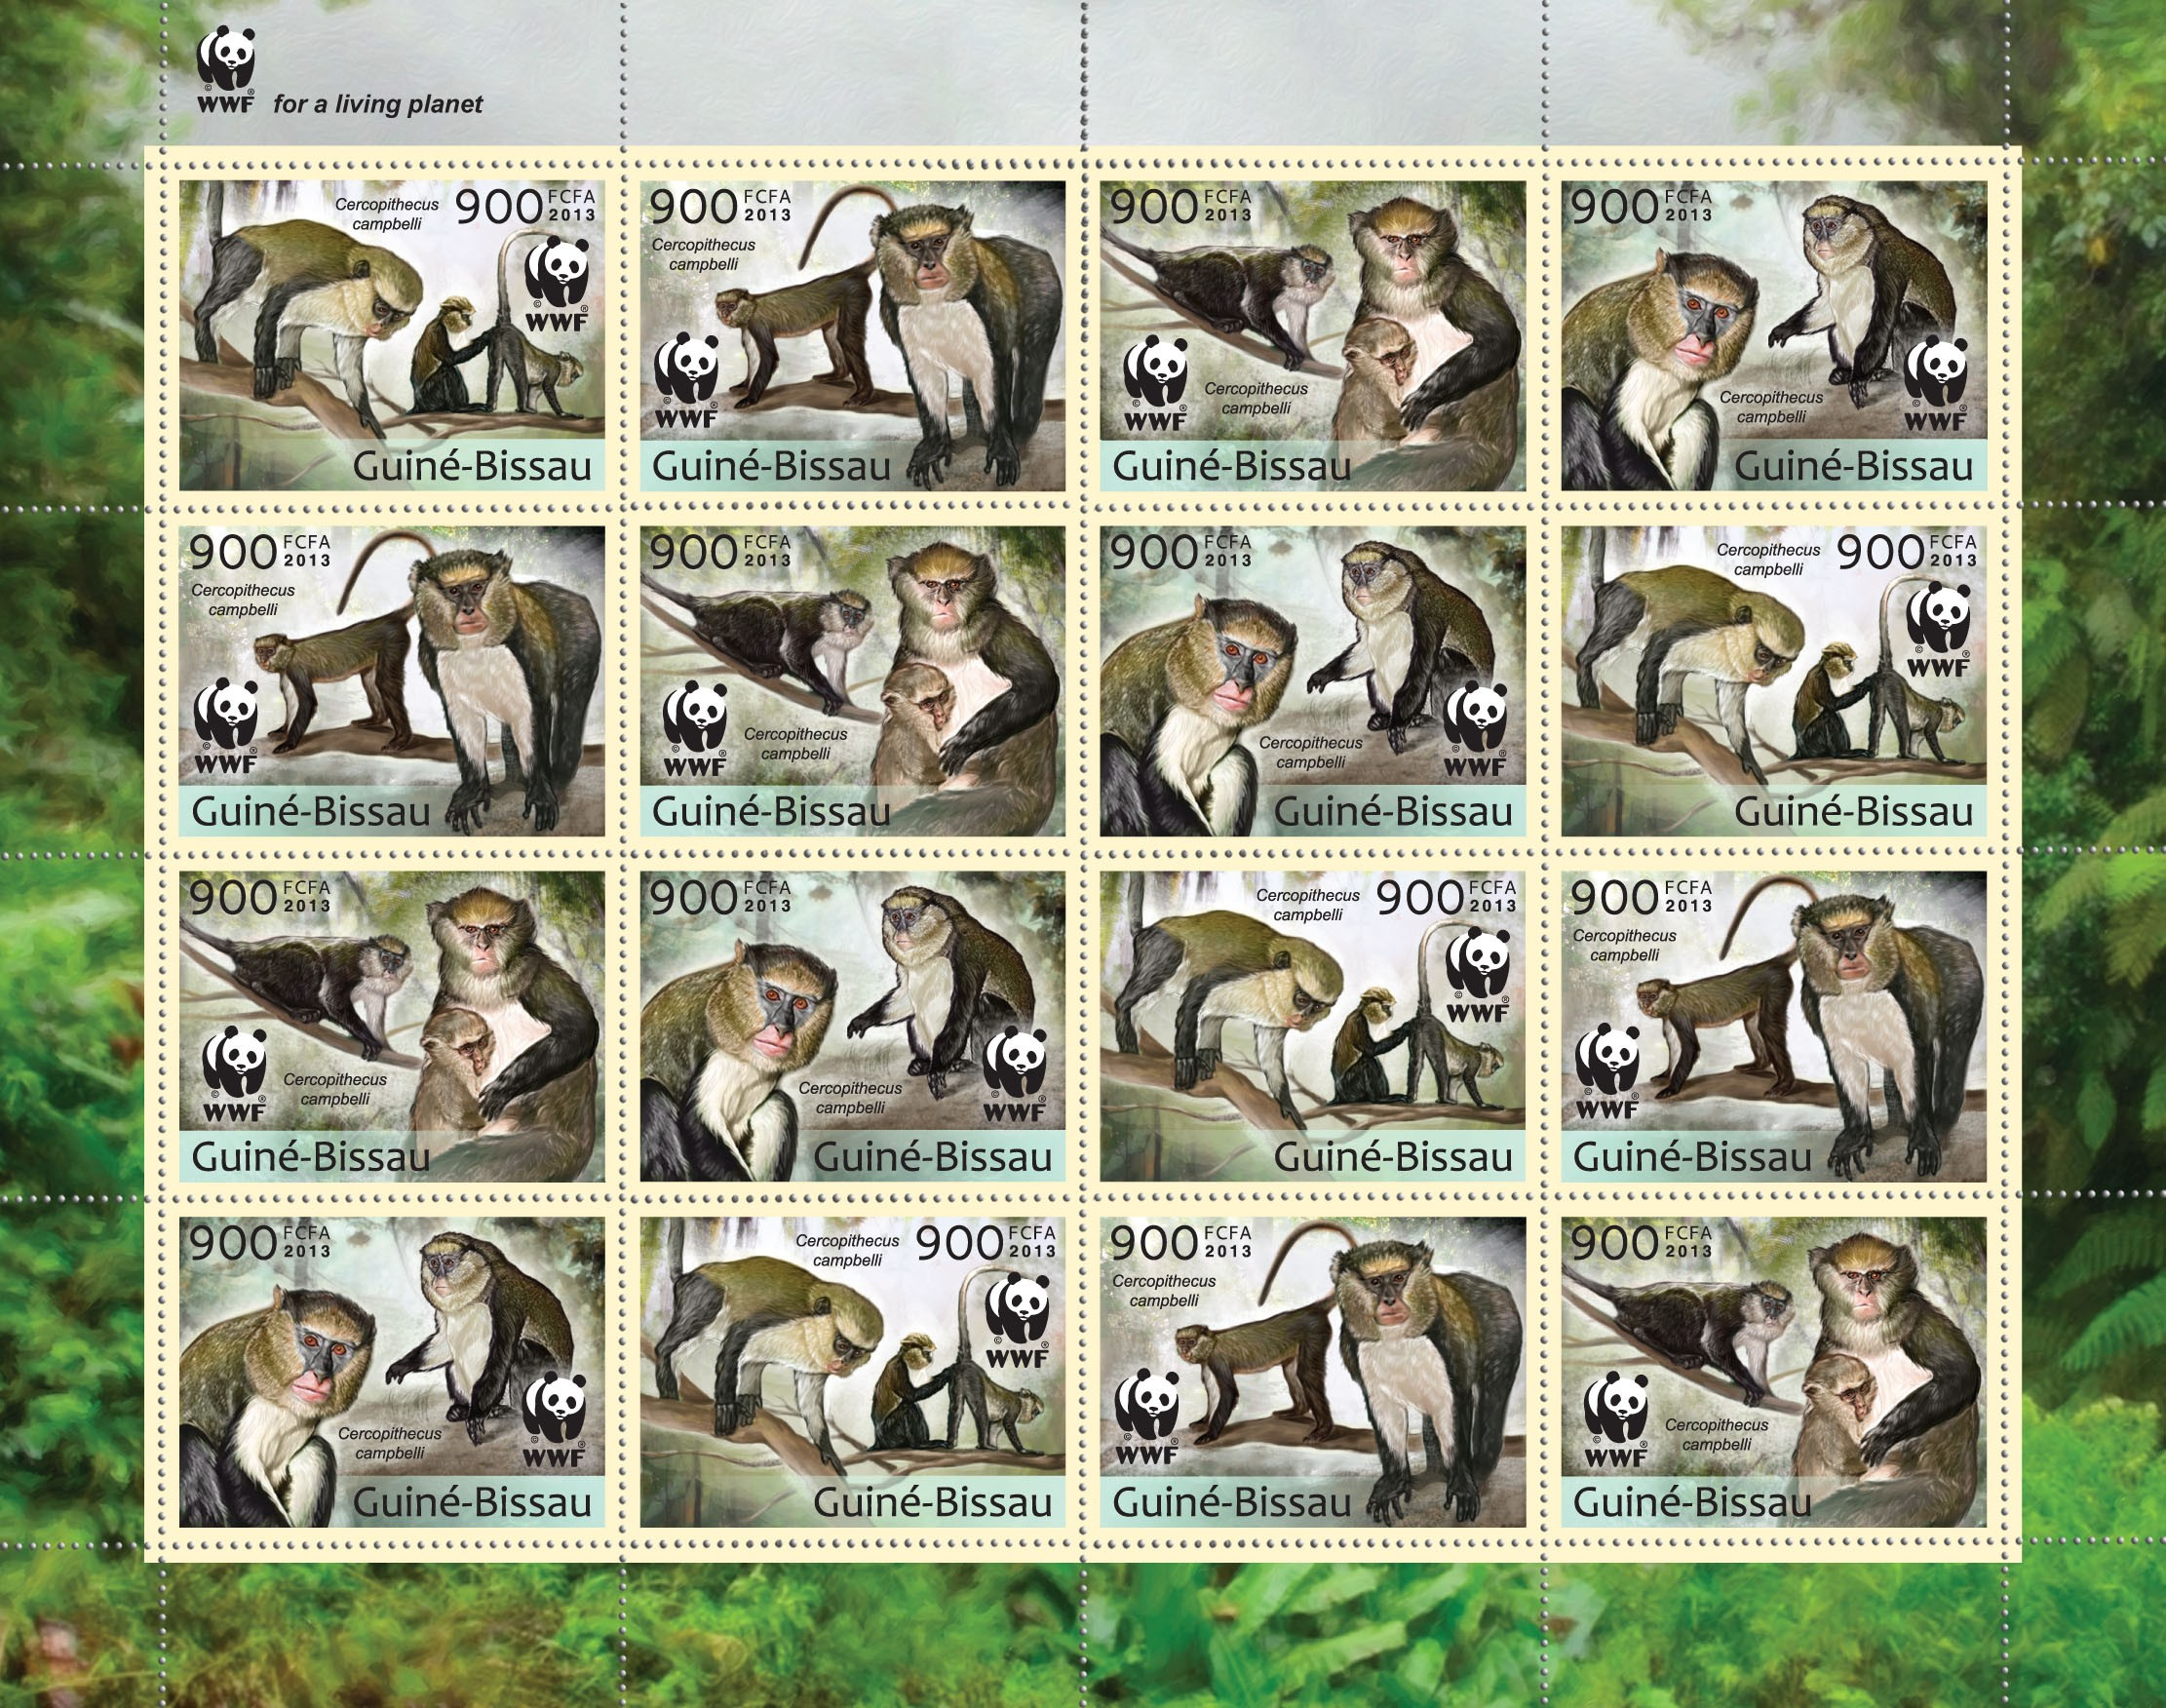 WWF - Monkeys (Cercopithecus campgelli) Sheet of 4 sets - Perforated - Issue of Guinée-Bissau postage stamps